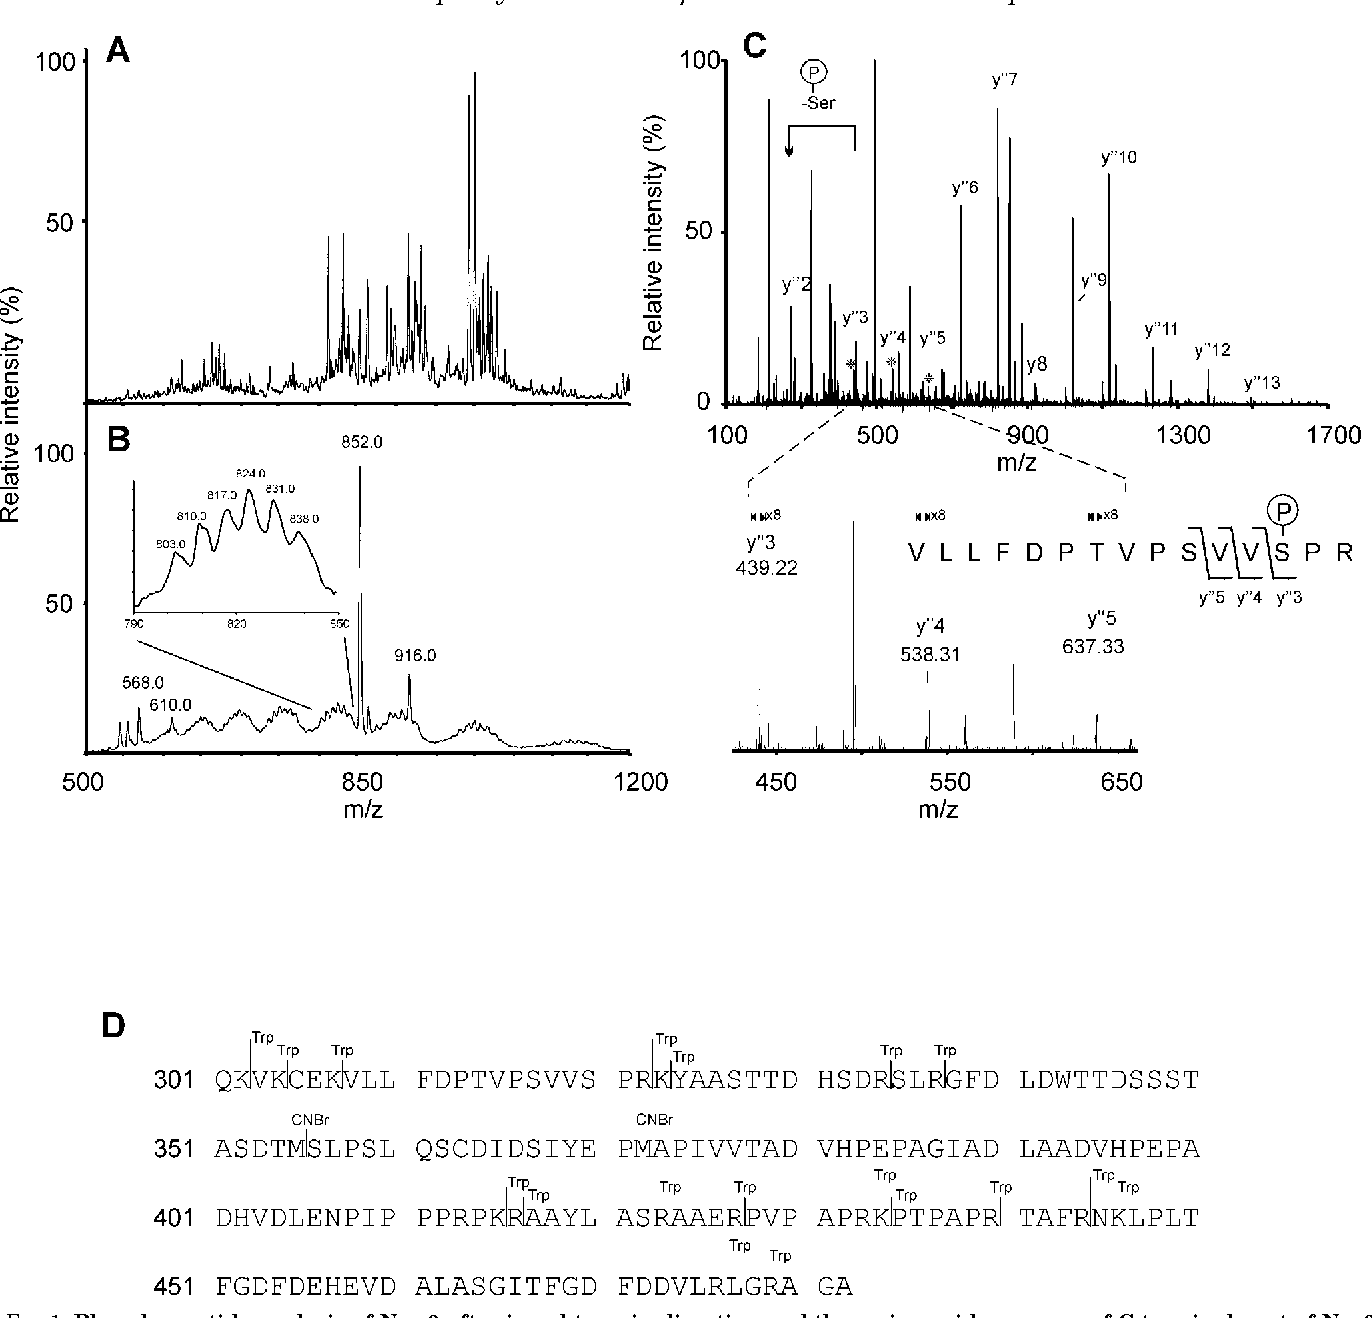 FIG. 1. Phosphopeptide analysis of Nsp 3 after in-gel trypsin digestion and the amino acid sequence of C-terminal part of Nsp3. A, negative ion ESI Q1 scan of the peptide mixture after elution from the POROS R2 microcolumn. B, precursor ion scan of m/z 279 of the same sample showing putative phosphopeptides; inset, close-up of m/z 790–850 showing a [M 2 11H]112 of a species carrying 7–12 phosphates. C, ESI-CID MS analysis of the 853.4 [M 1 2H]21 ion. The sequence of the peptide and the phosphorylation site could be determined from a Y-ion series. Diagnostic ions Y3 to Y5, which allow for localization of phosphorylation to Ser320, are marked with an asterisk and shown in the inset. Spectra A and B were acquired using a triple-quadrupole instrument, and spectrum C using a quadrupole-time of flight instrument. D, amino acid sequence of the C-terminal part of SFV Nsp3. Cleavage sites by trypsin (Trp) and CNBr are marked with lines.